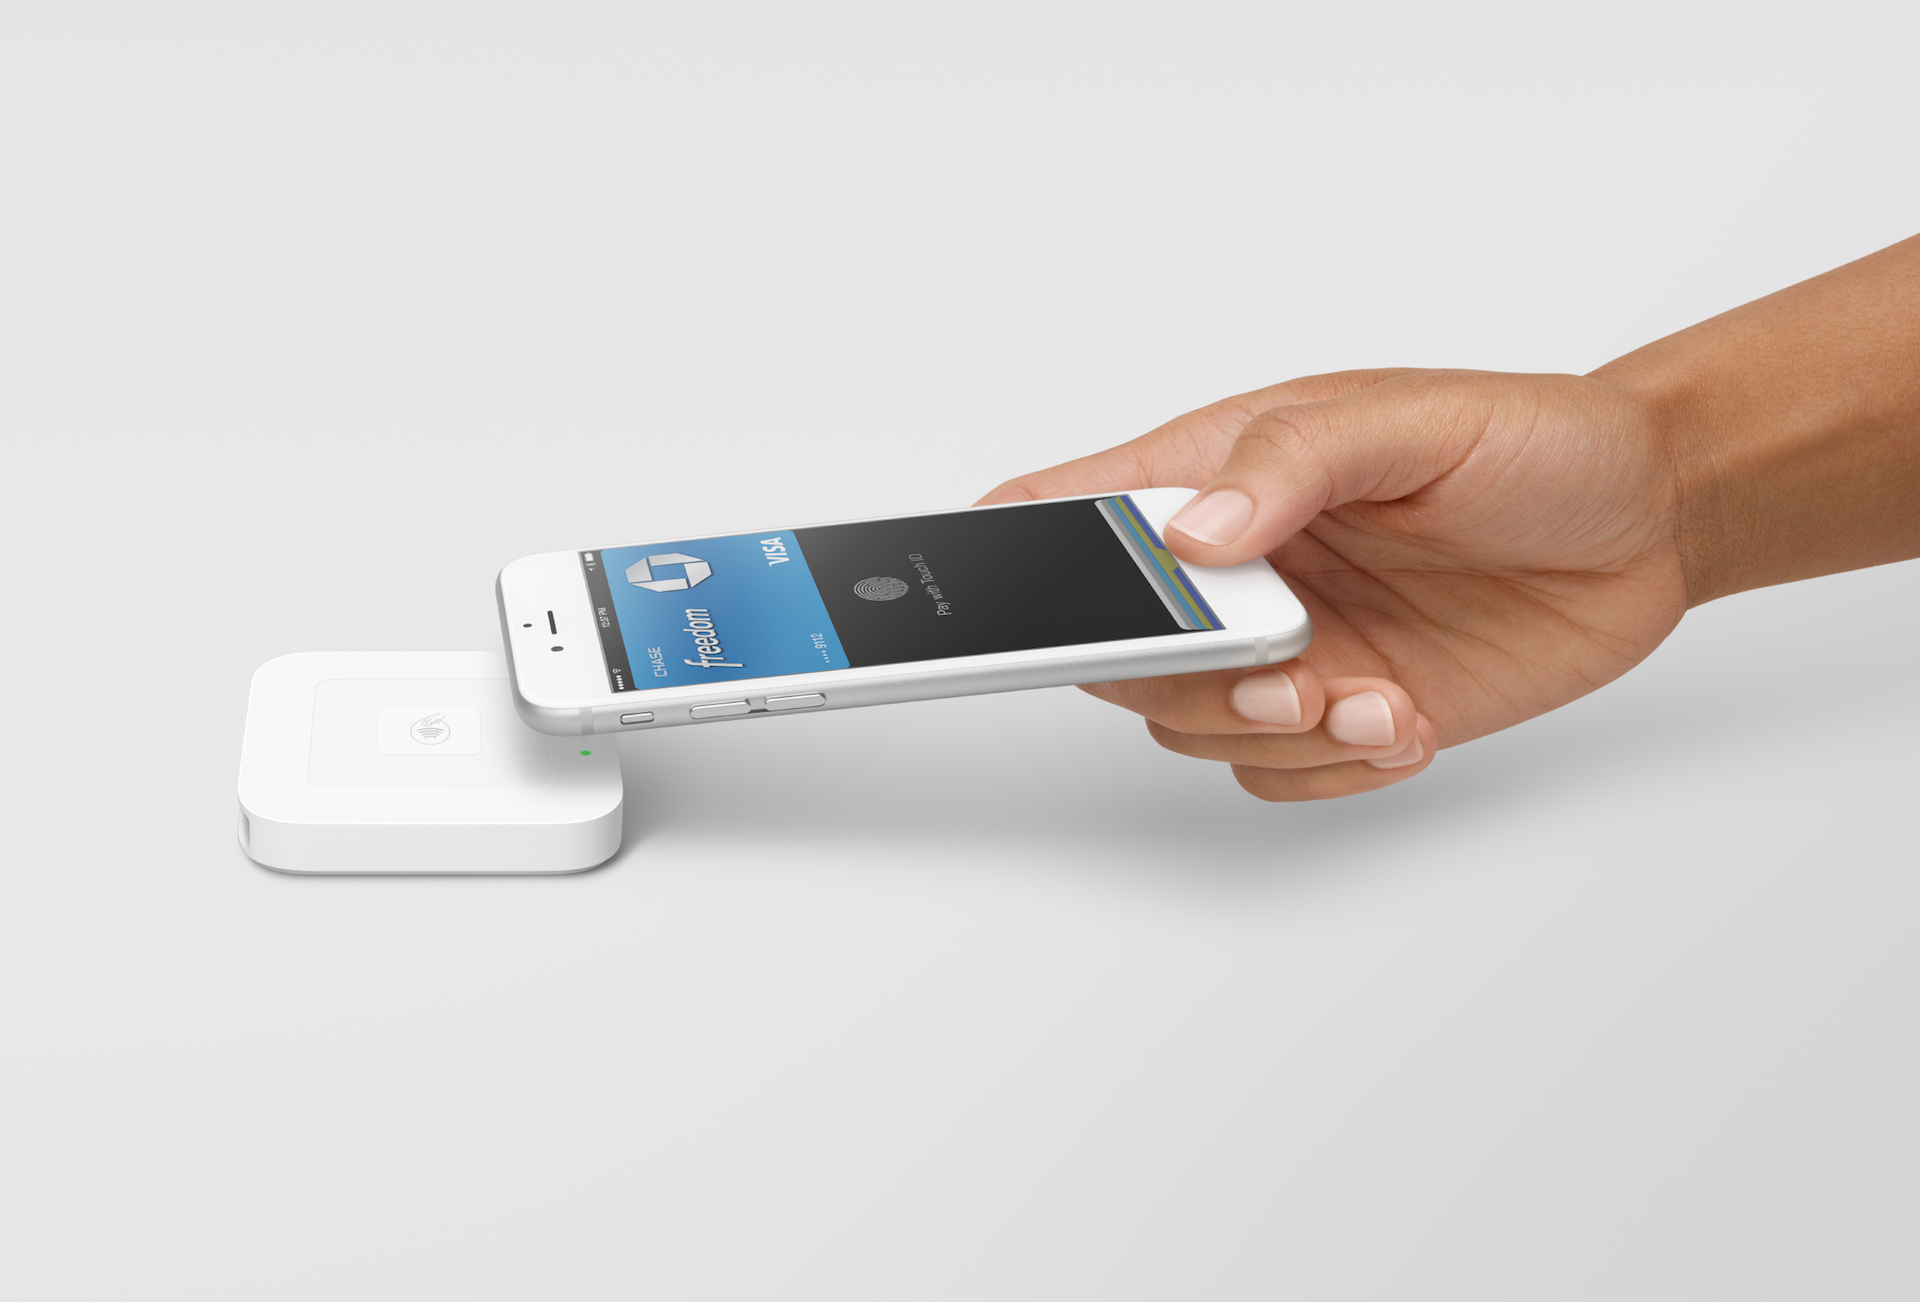 Small businesses can accept Apple Pay with the Square Reader